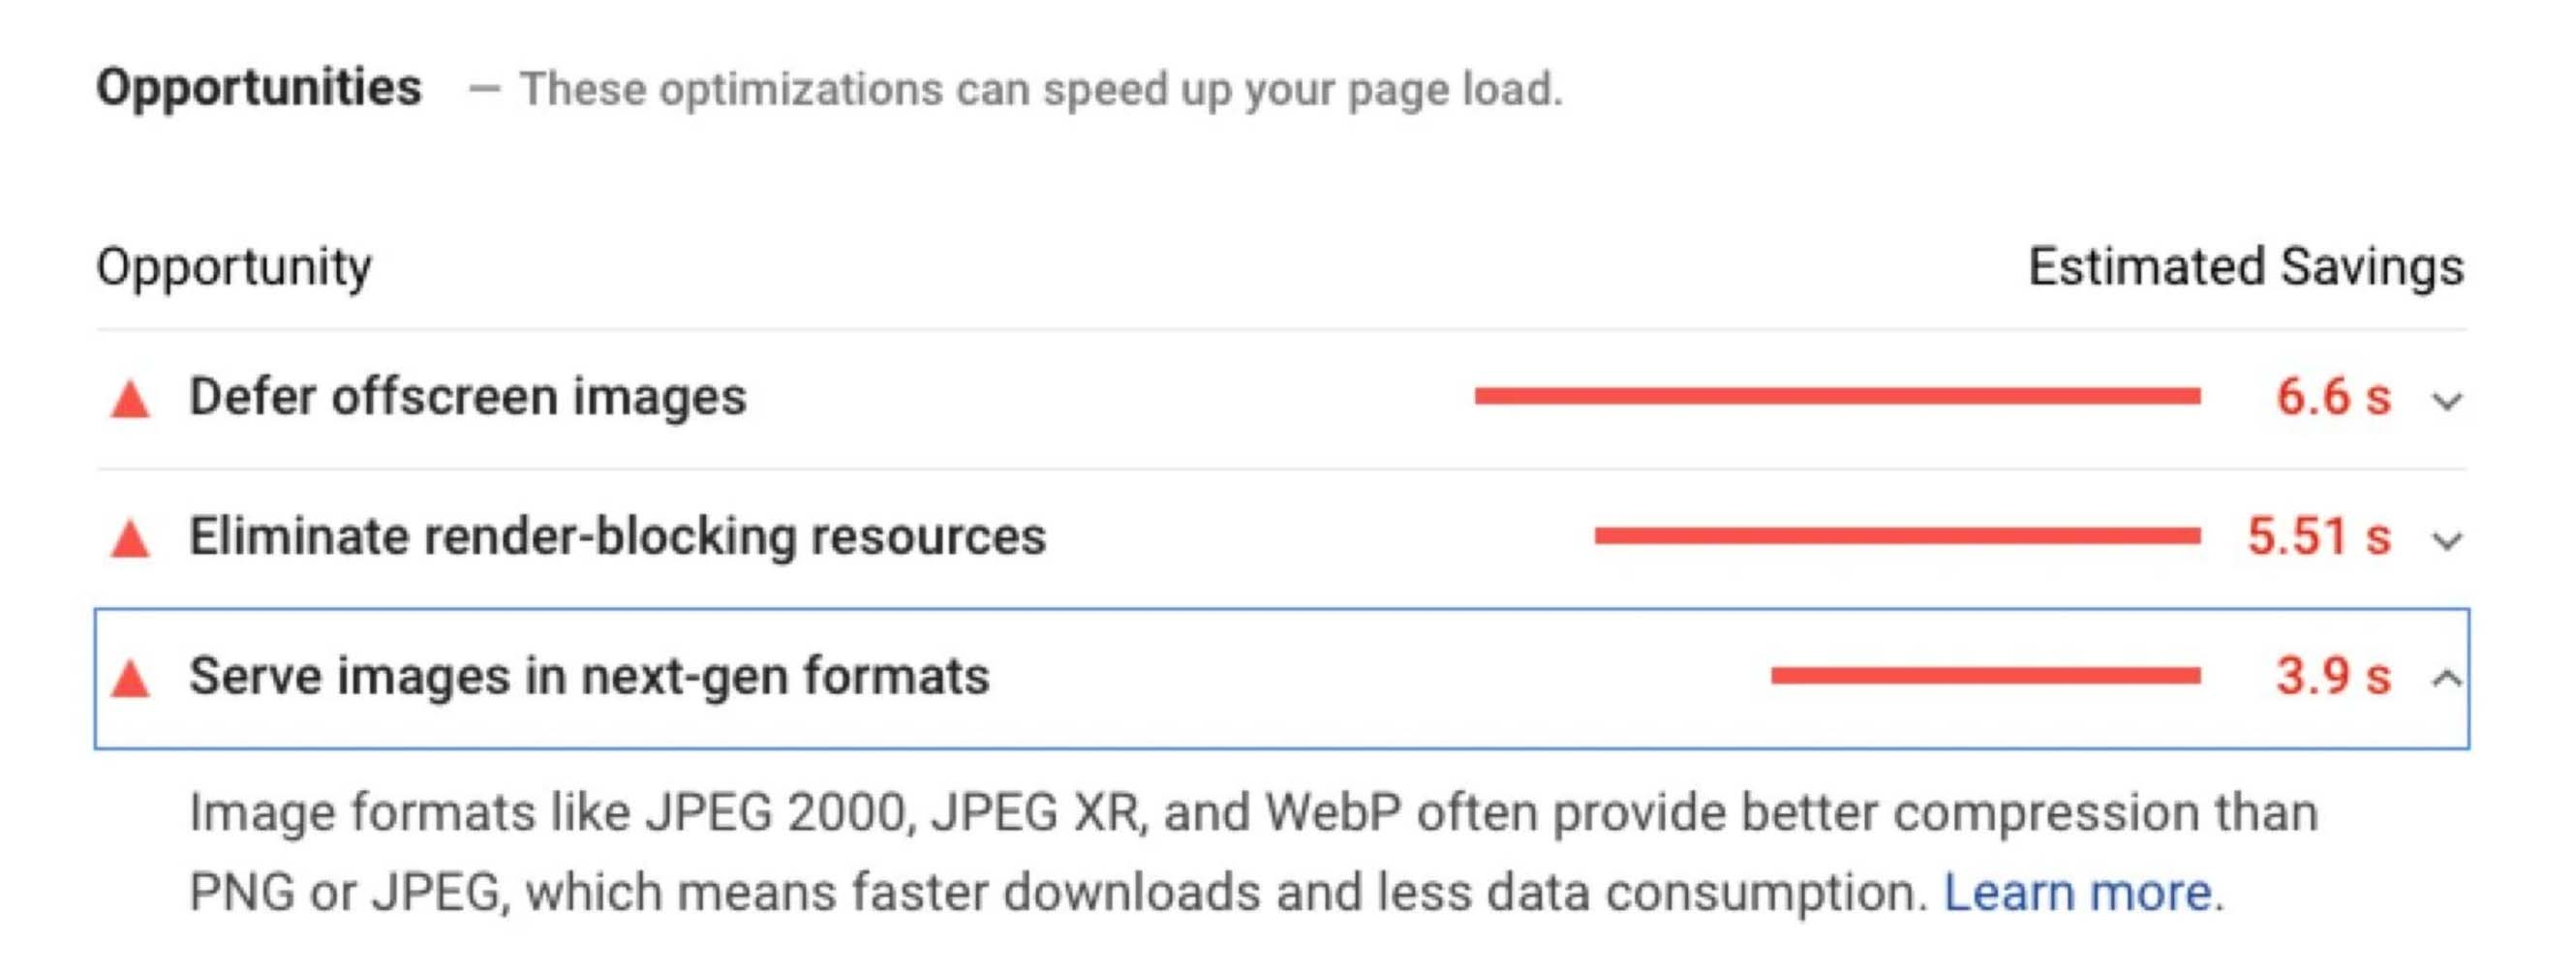 PageSpeed serve images in next-gen formats